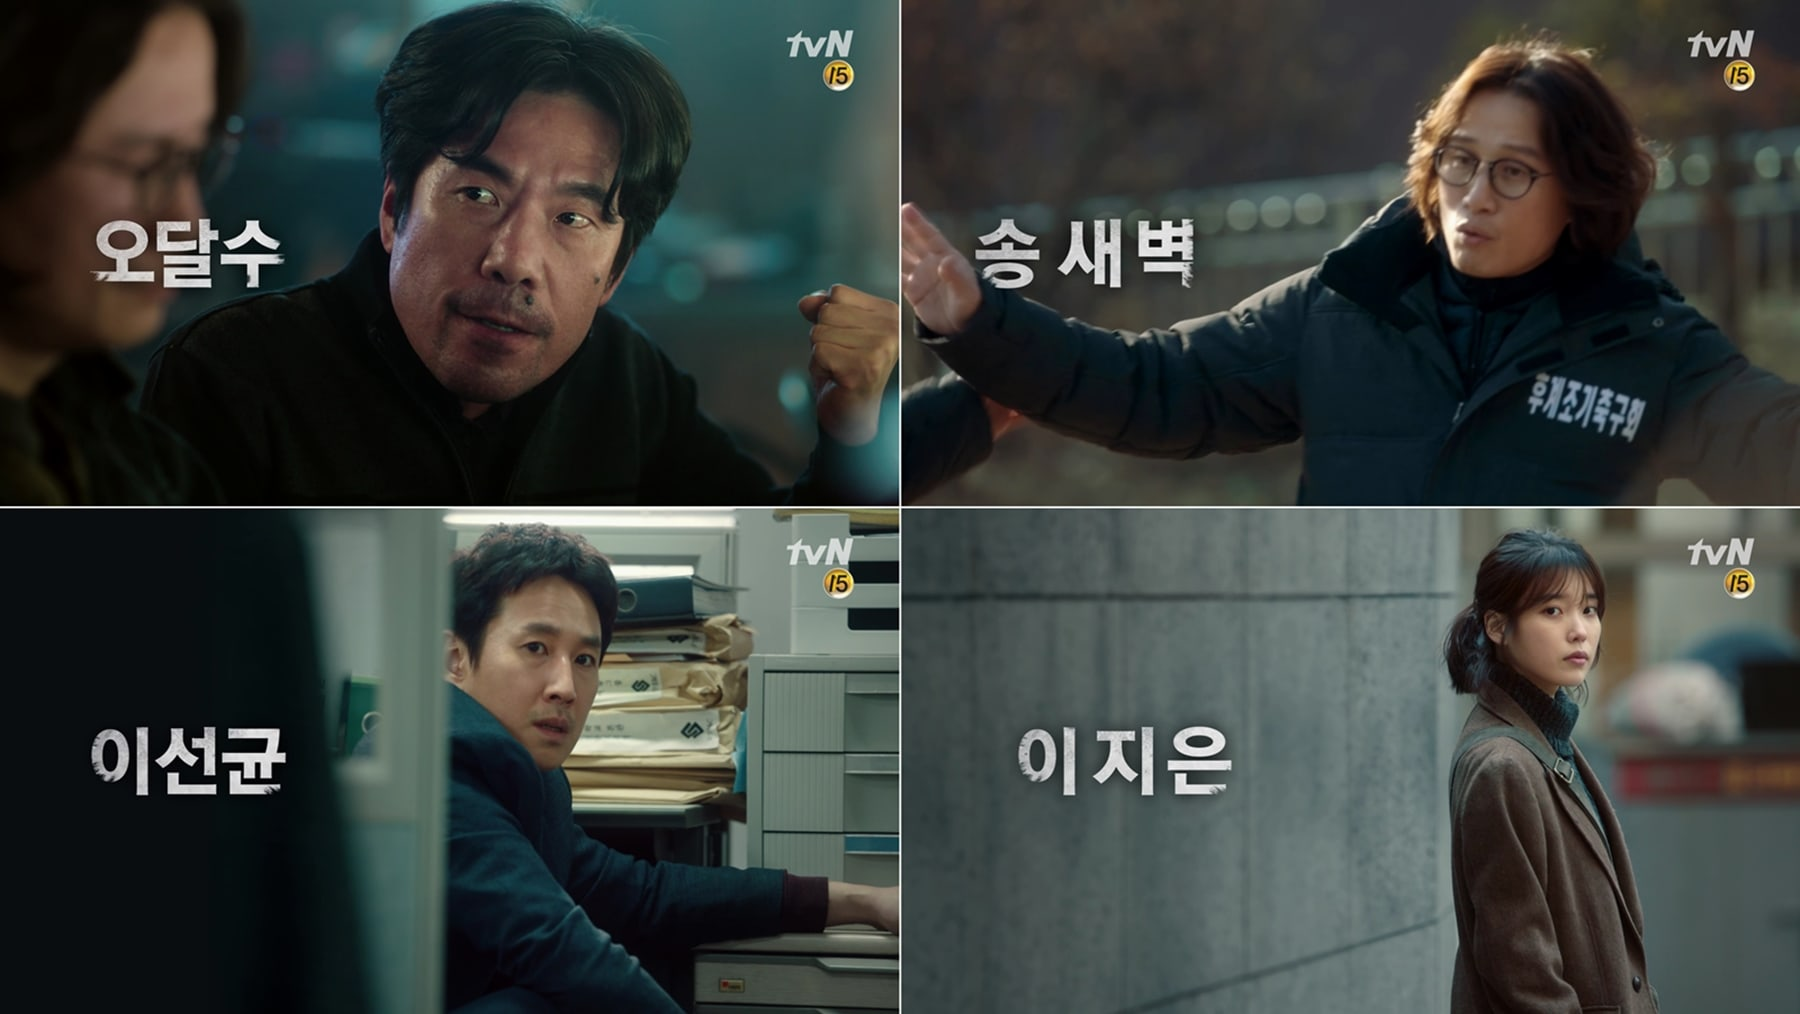 Watch: New tvN Drama Starring IU Drops First Look At Lead Characters